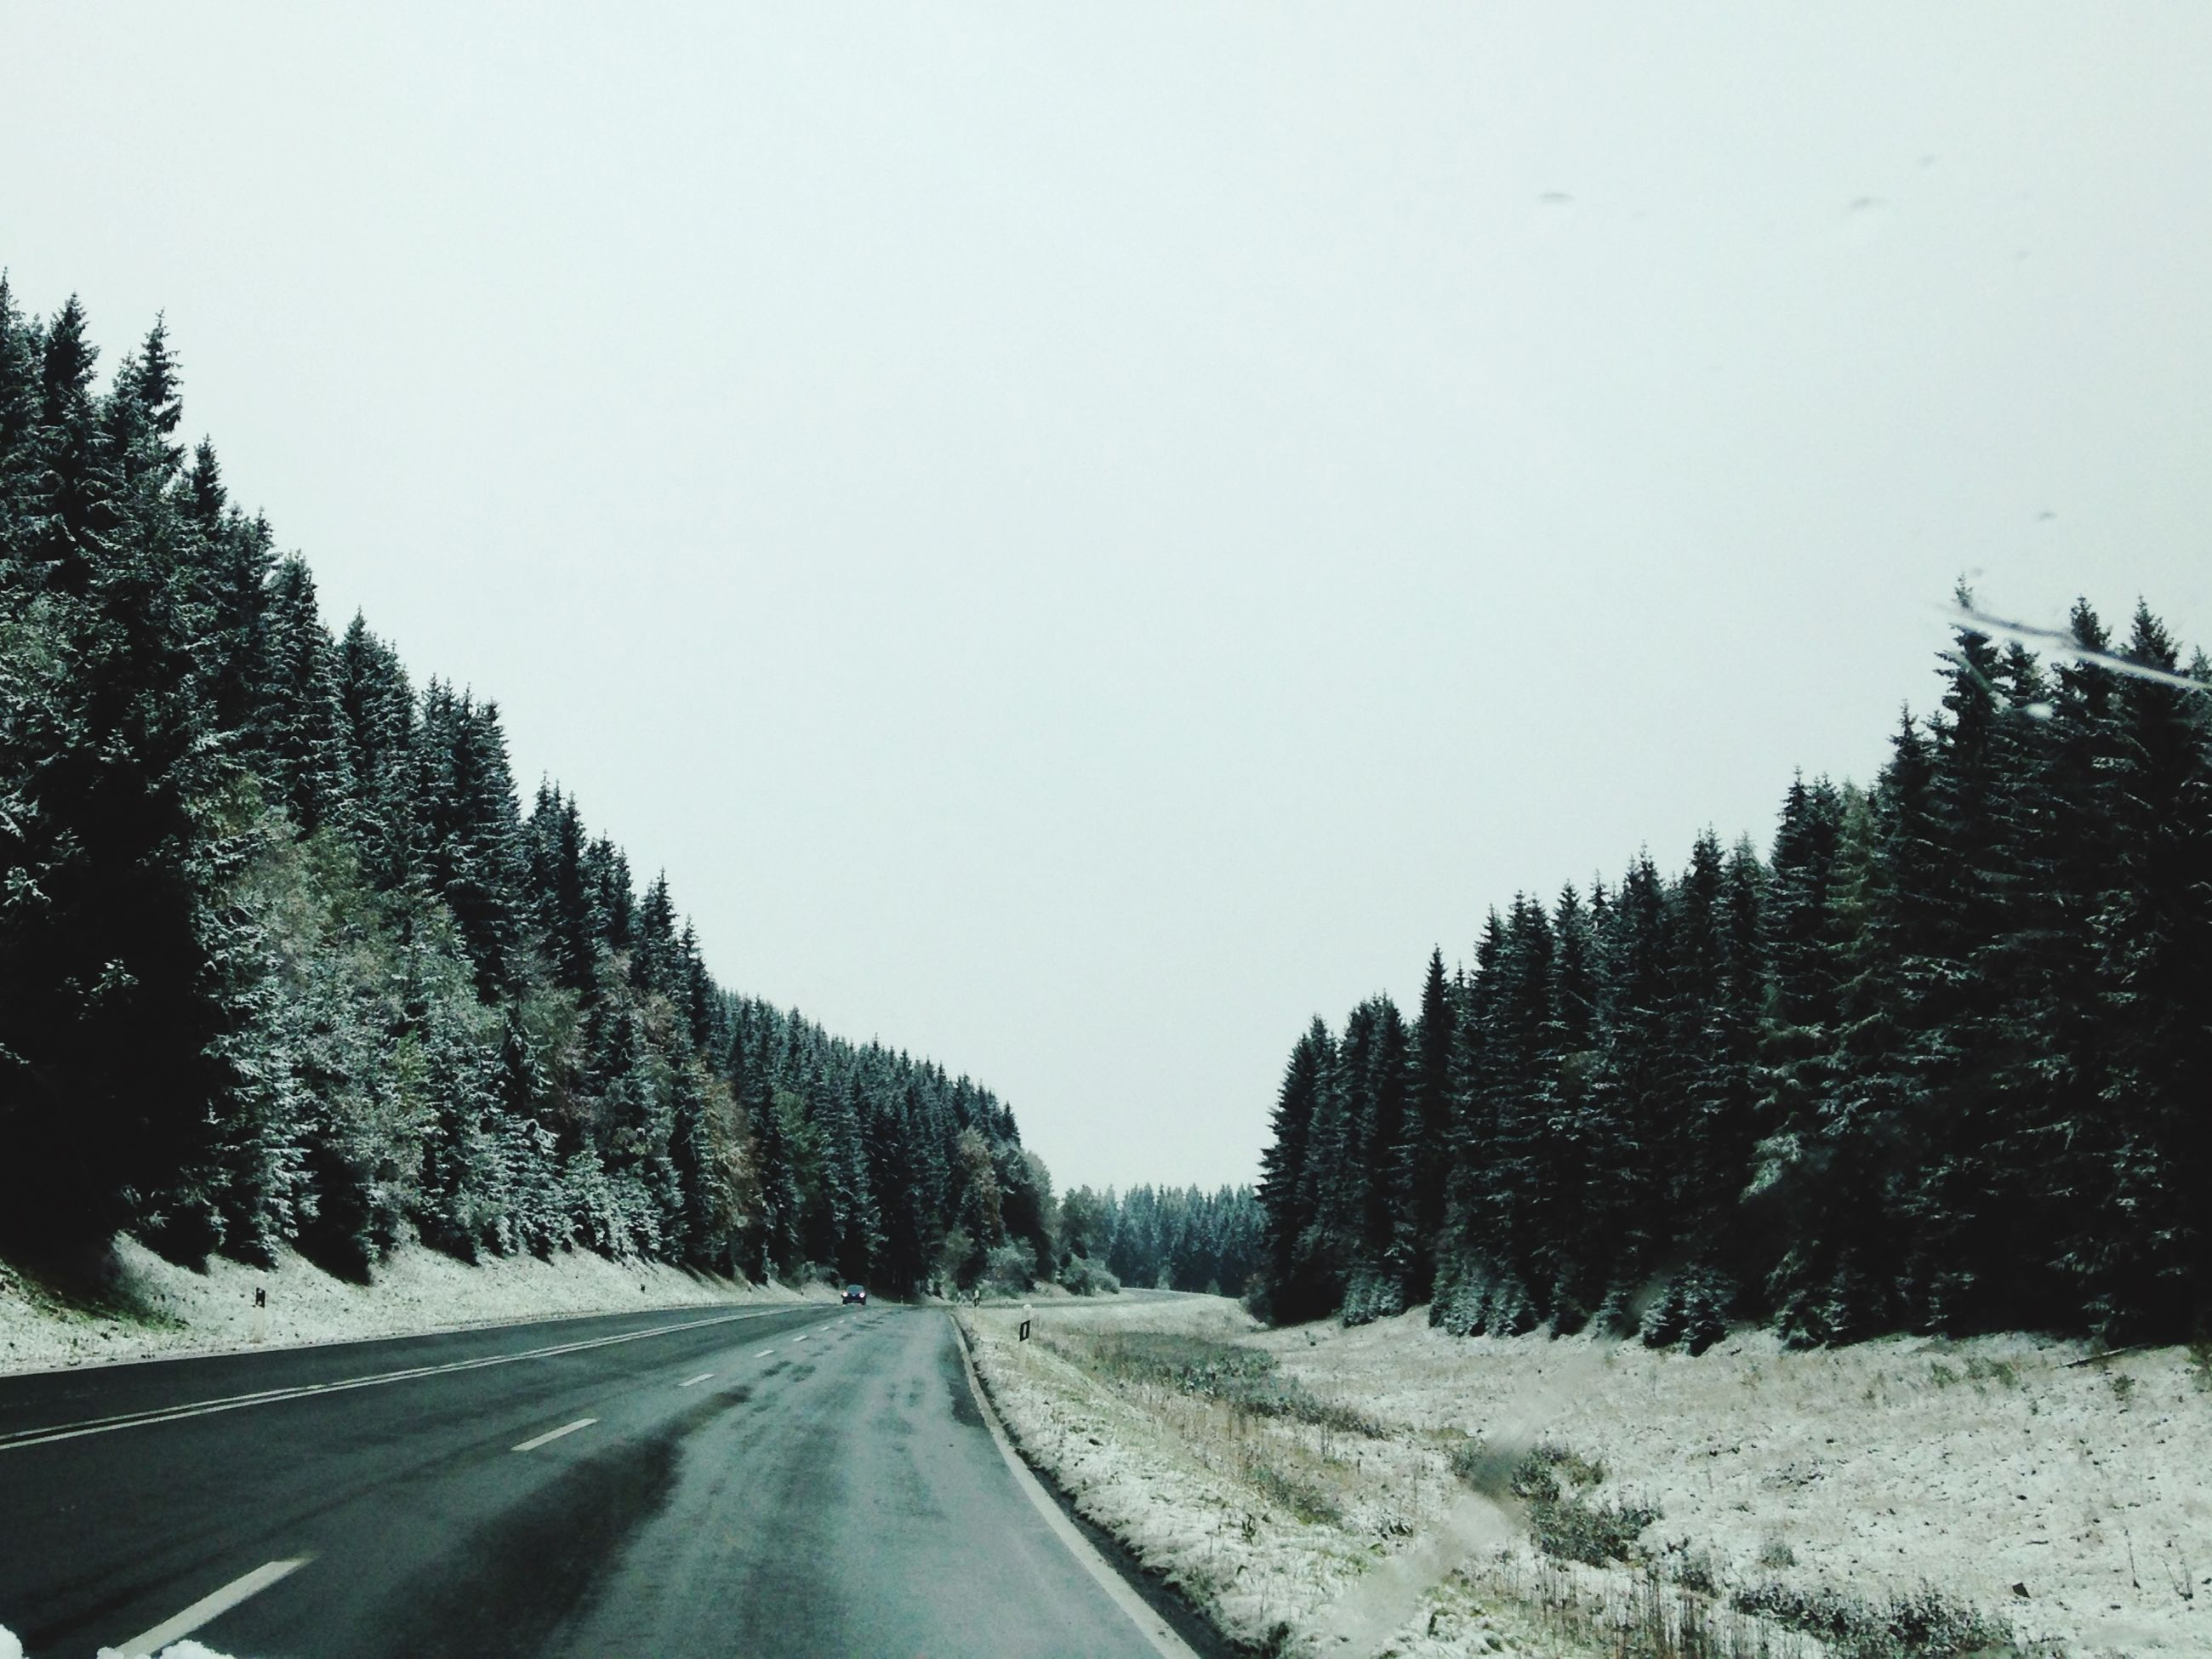 snow, clear sky, winter, cold temperature, road, the way forward, tree, copy space, transportation, season, weather, tranquility, tranquil scene, diminishing perspective, nature, vanishing point, covering, beauty in nature, empty road, scenics